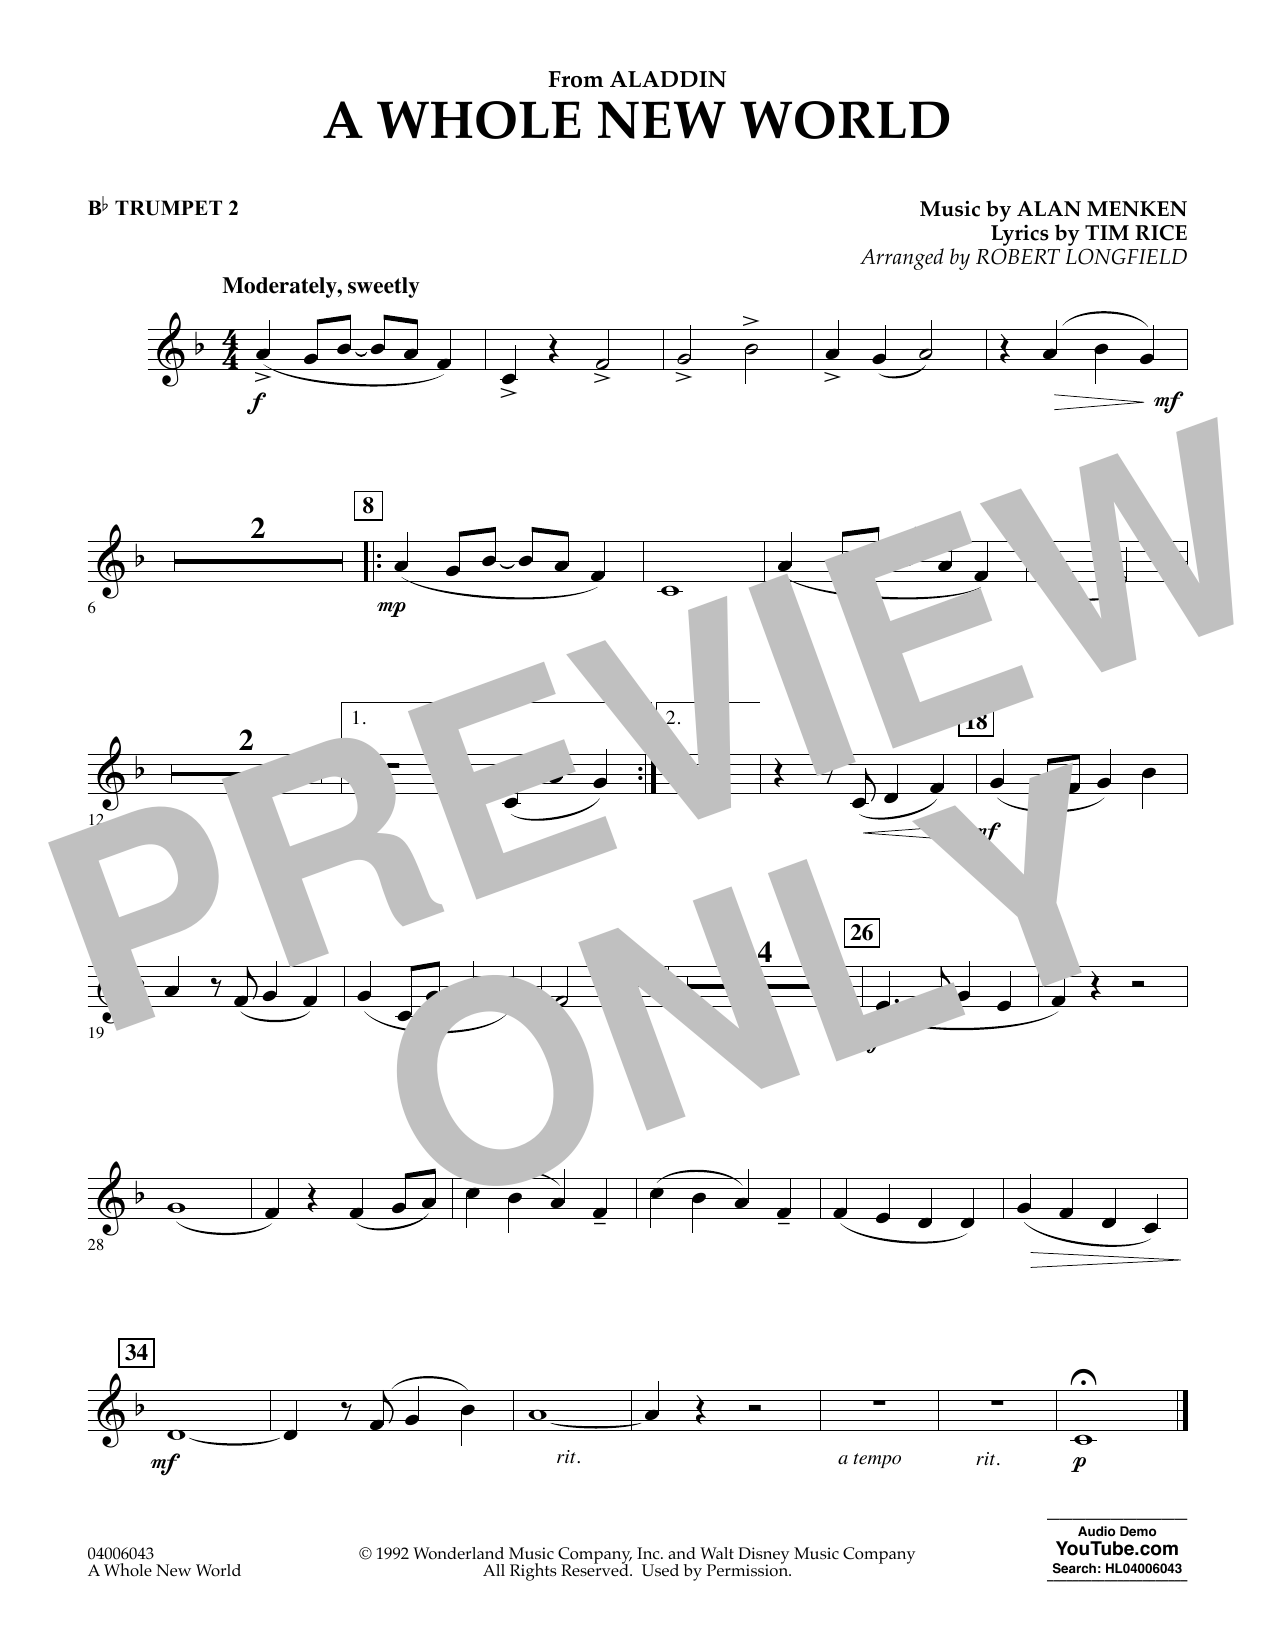 Download Alan Menken 'A Whole New World (from Aladdin) (arr. Robert Longfield) - Bb Trumpet 2' Digital Sheet Music Notes & Chords and start playing in minutes